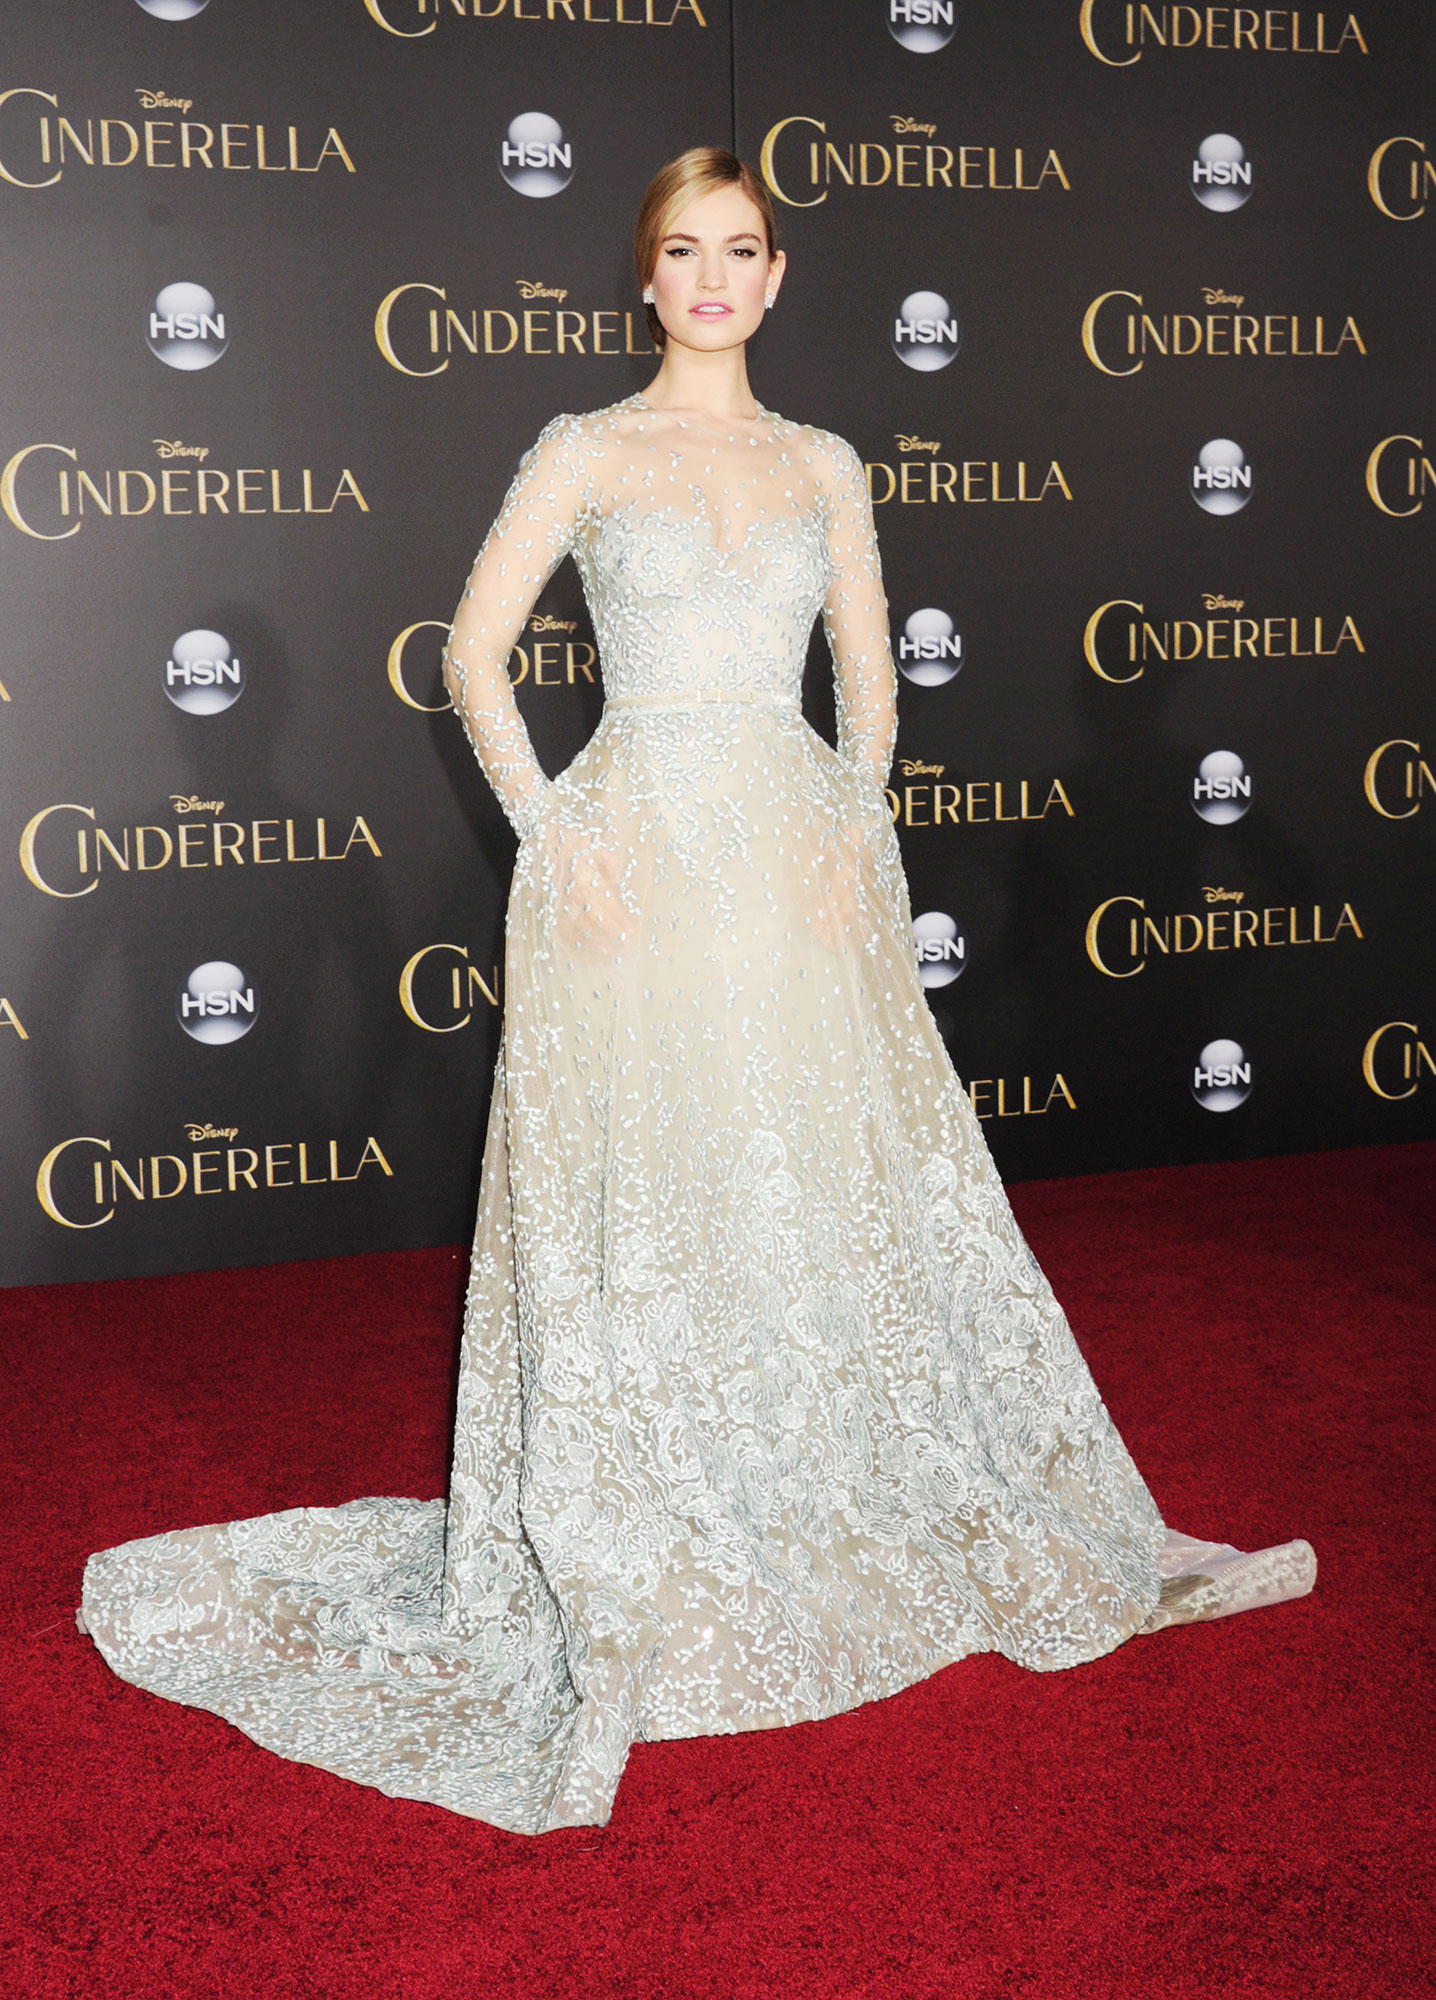 See Birthday Girl Lily James¹ Most Stylish Red Carpet Moments - At the Hollywood premiere of Cinderella , the blonde beauty looked like a Disney princess IRL in her Elie Saab couture gown and bedazzled Christian Loubotuin heels.